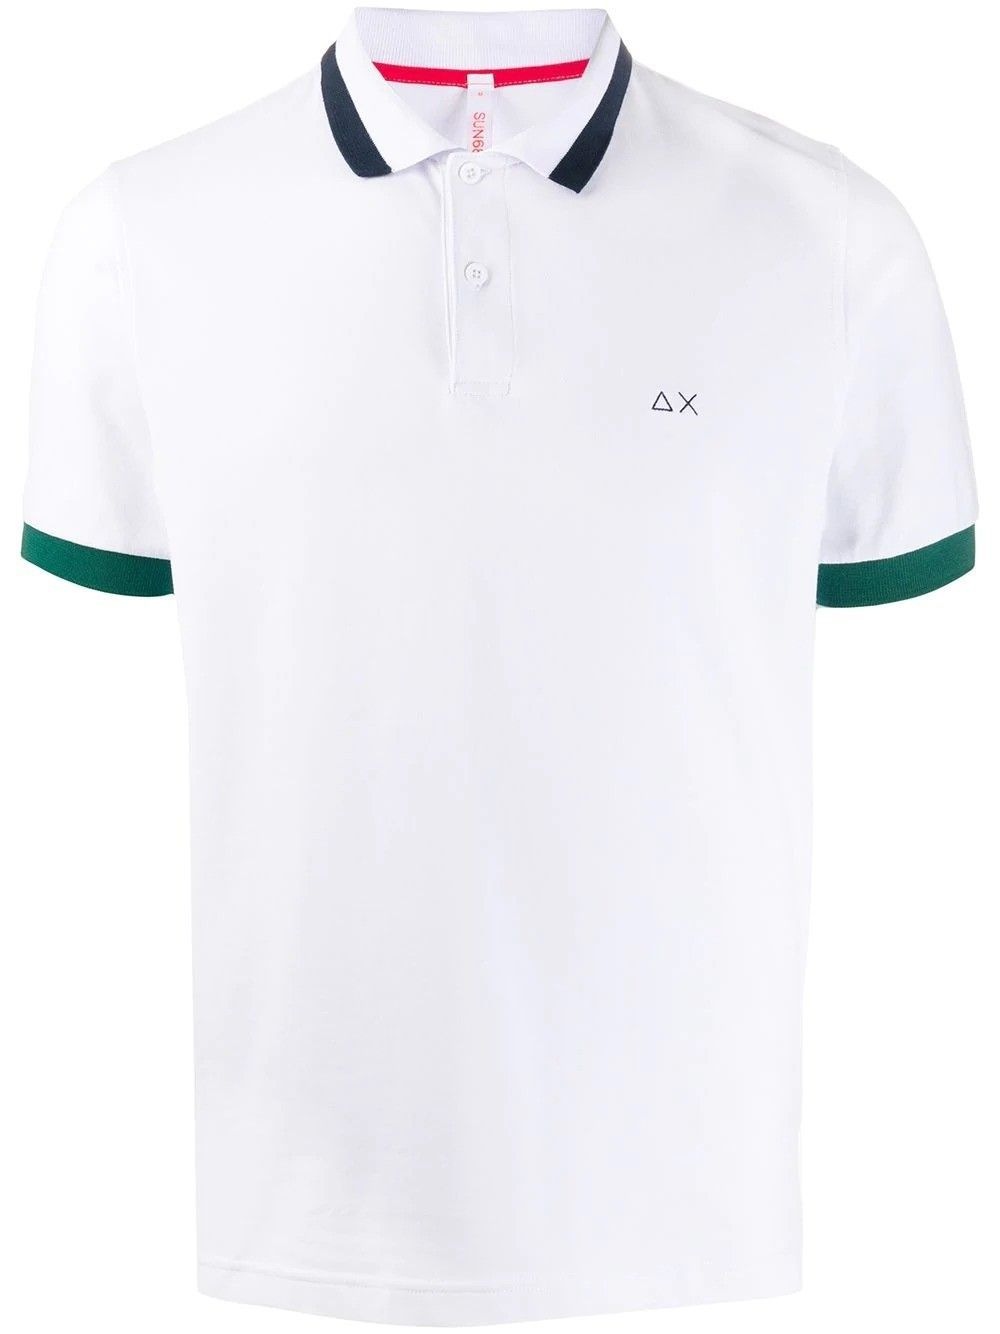 SUN 68 MEN'S A3010701 WHITE COTTON POLO SHIRT